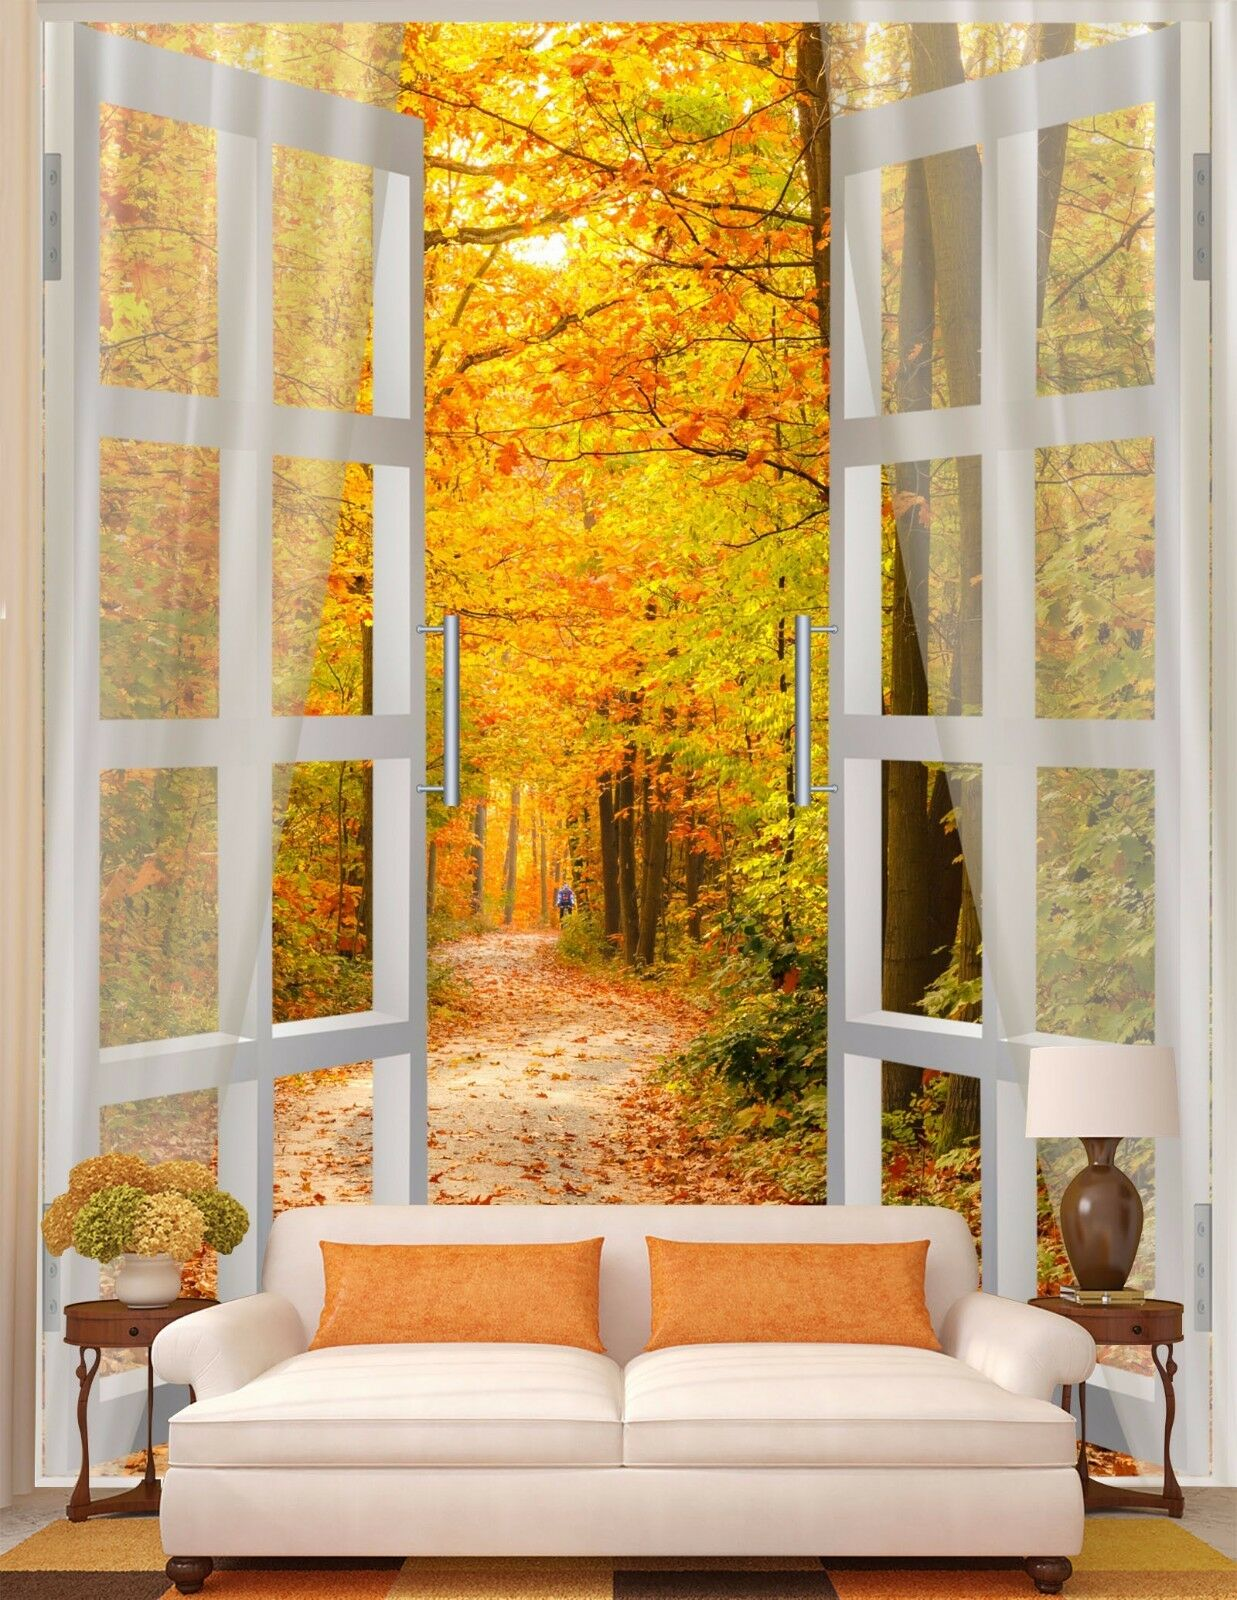 3D window view tree Wall Paper Wall Print Decal Decal Decal Wall Deco Indoor wall Mural Home ff7283